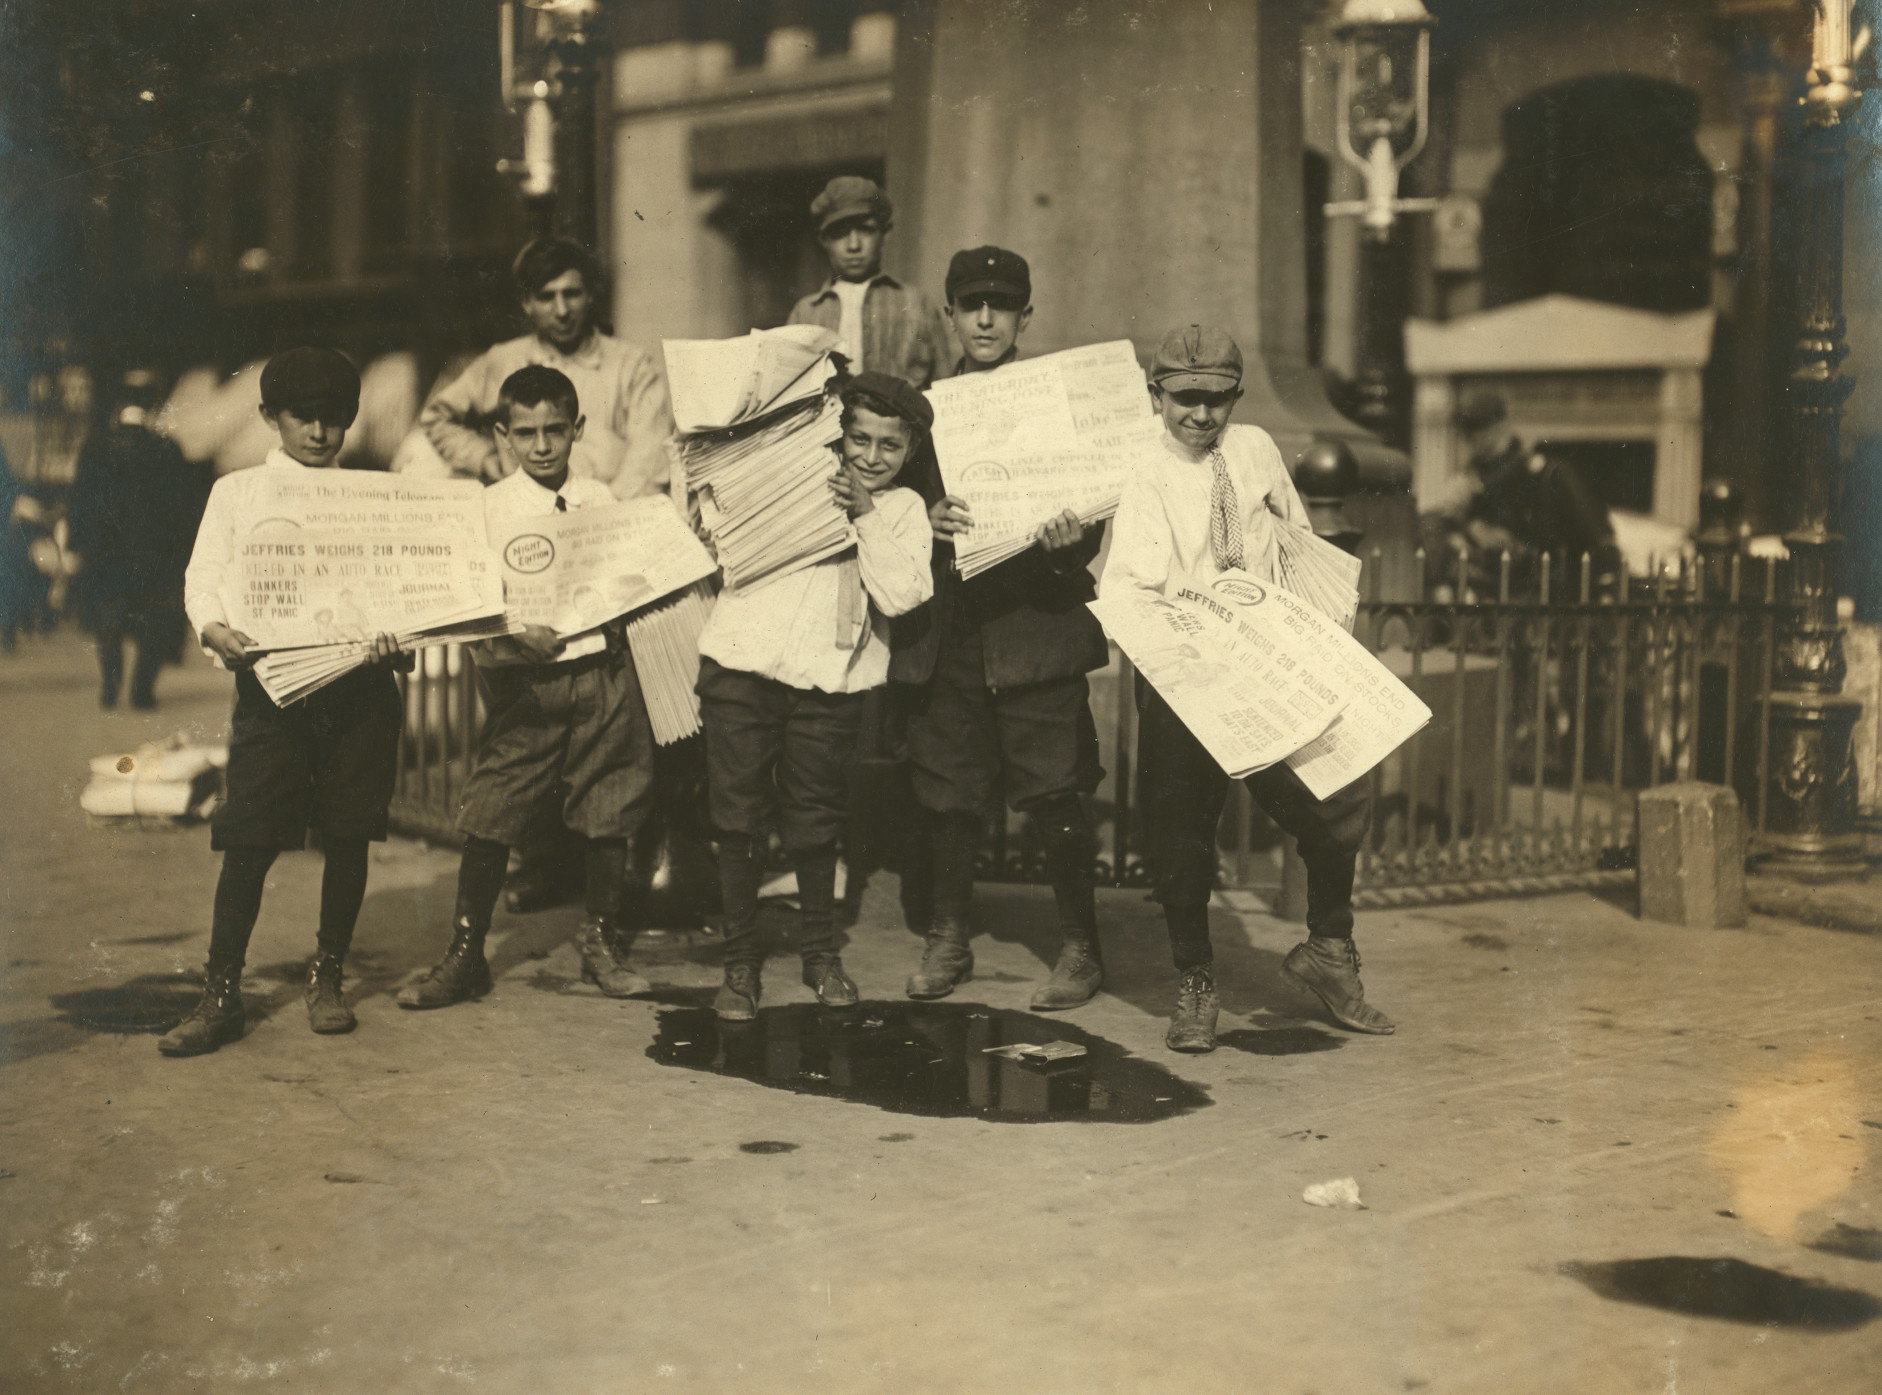 A Hard Life - Photos Of Turn-of-the Century Newsboys In New York City